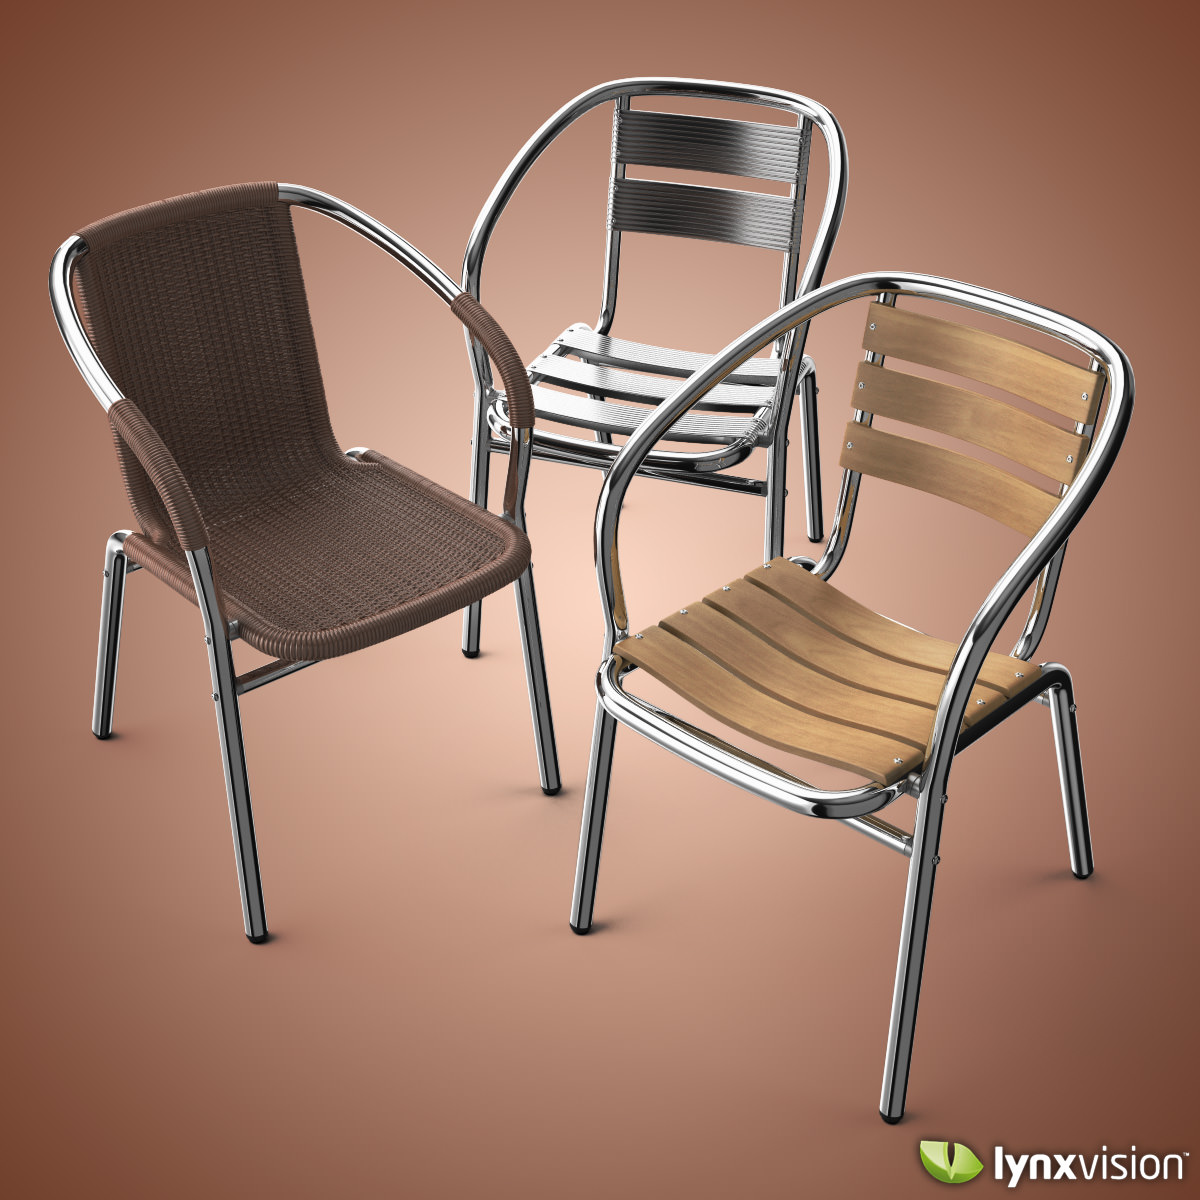 outdoor aluminum chairs collection 3d model max obj fbx c4d lwo lw lws lxo lxl 1